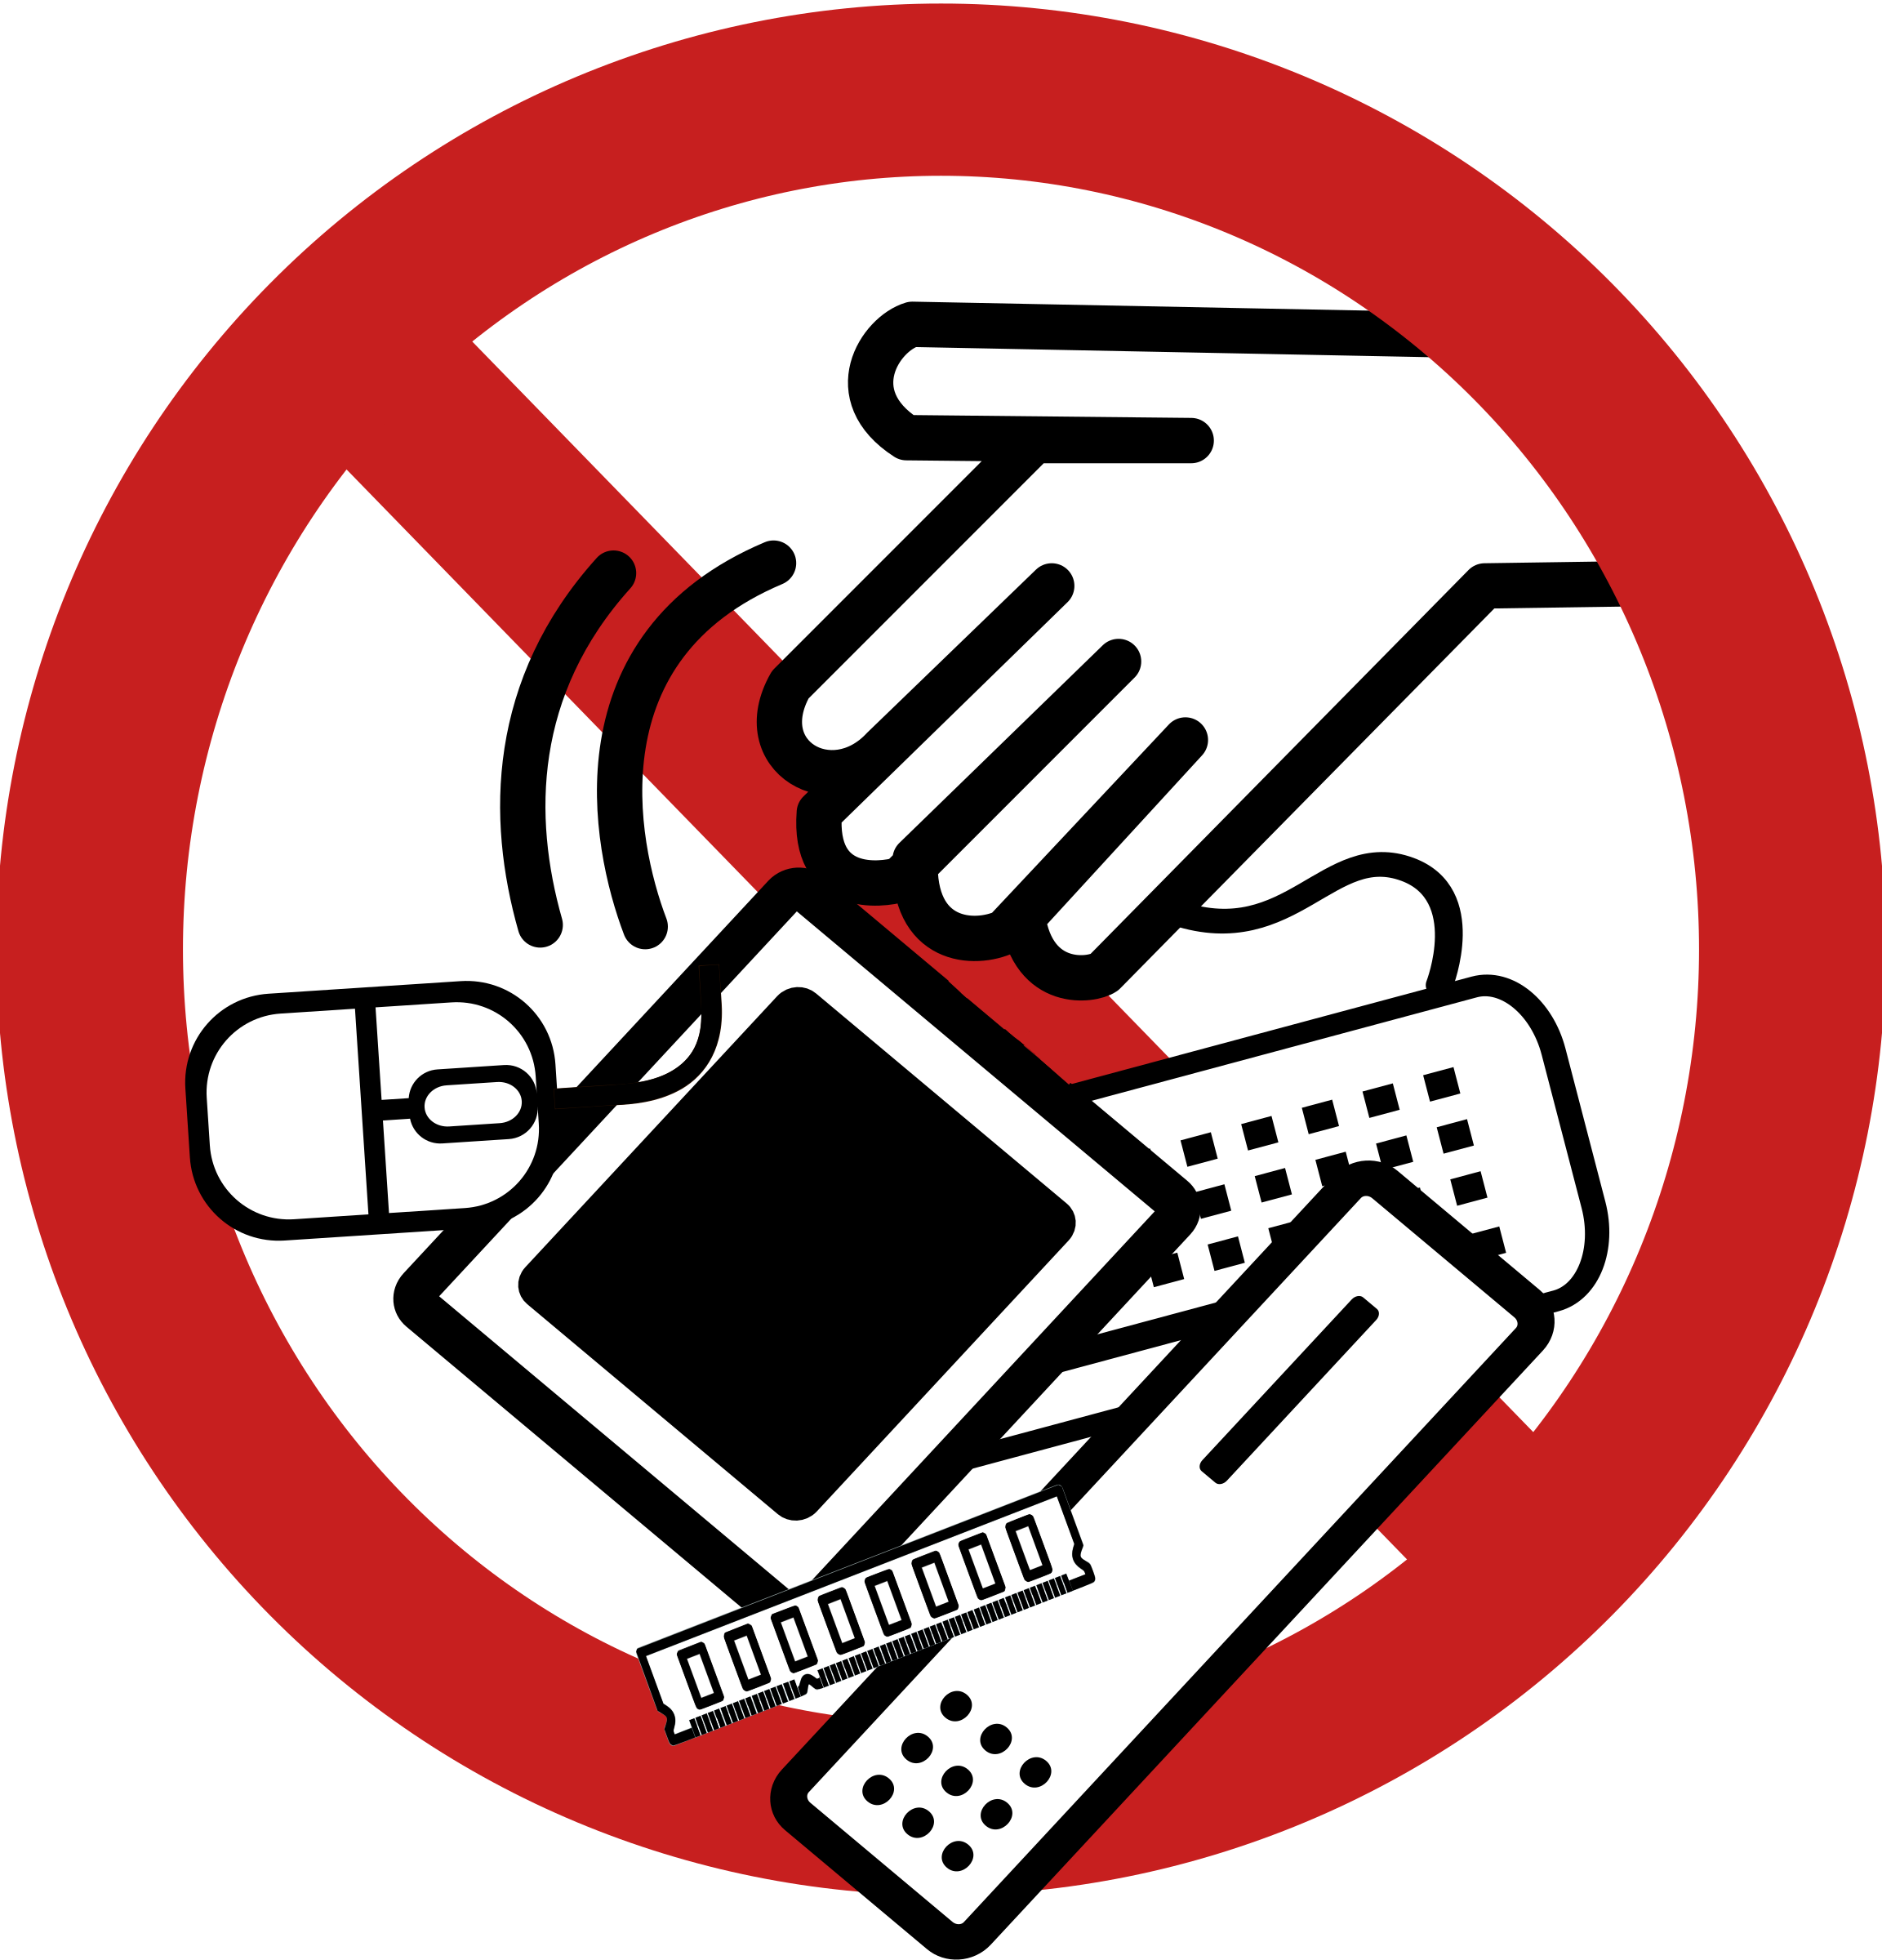 No electronics clipart clipart black and white stock Recycle Electronics Clip Art – Clipart Free Download clipart black and white stock